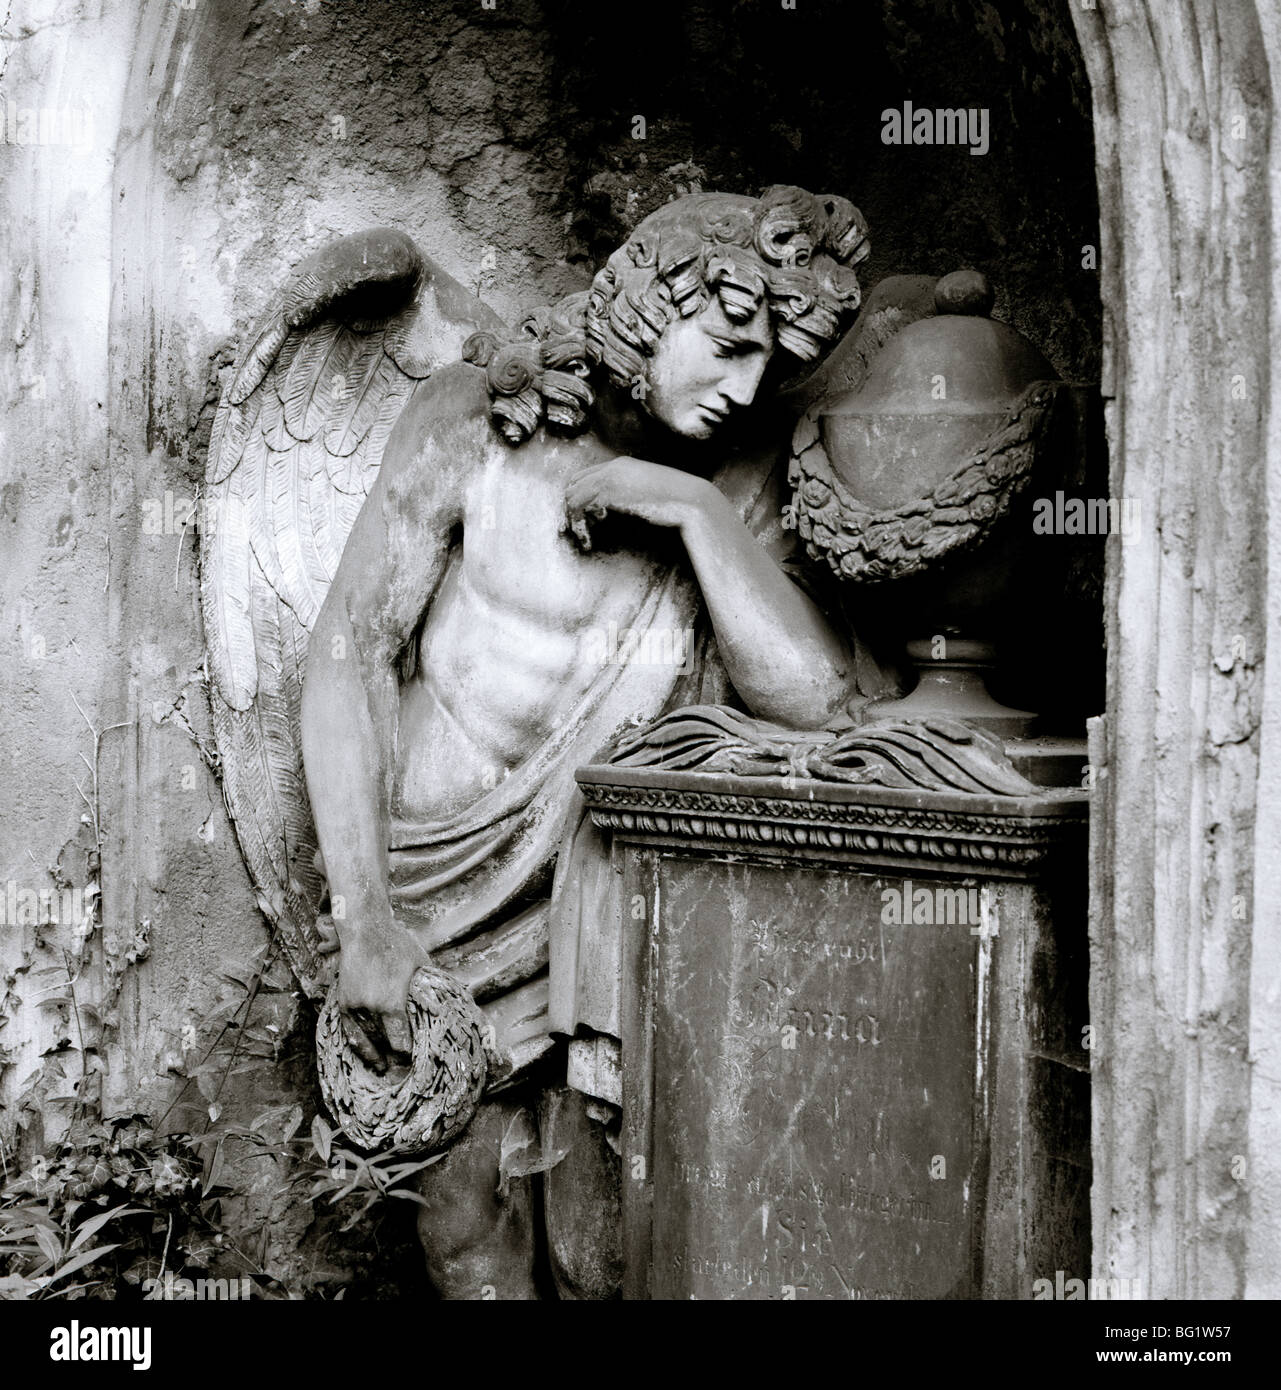 World Travel. Olsany Olsanske Cemetery angel in the ancient city of Prague Praha in the Czech Republic in Eastern - Stock Image